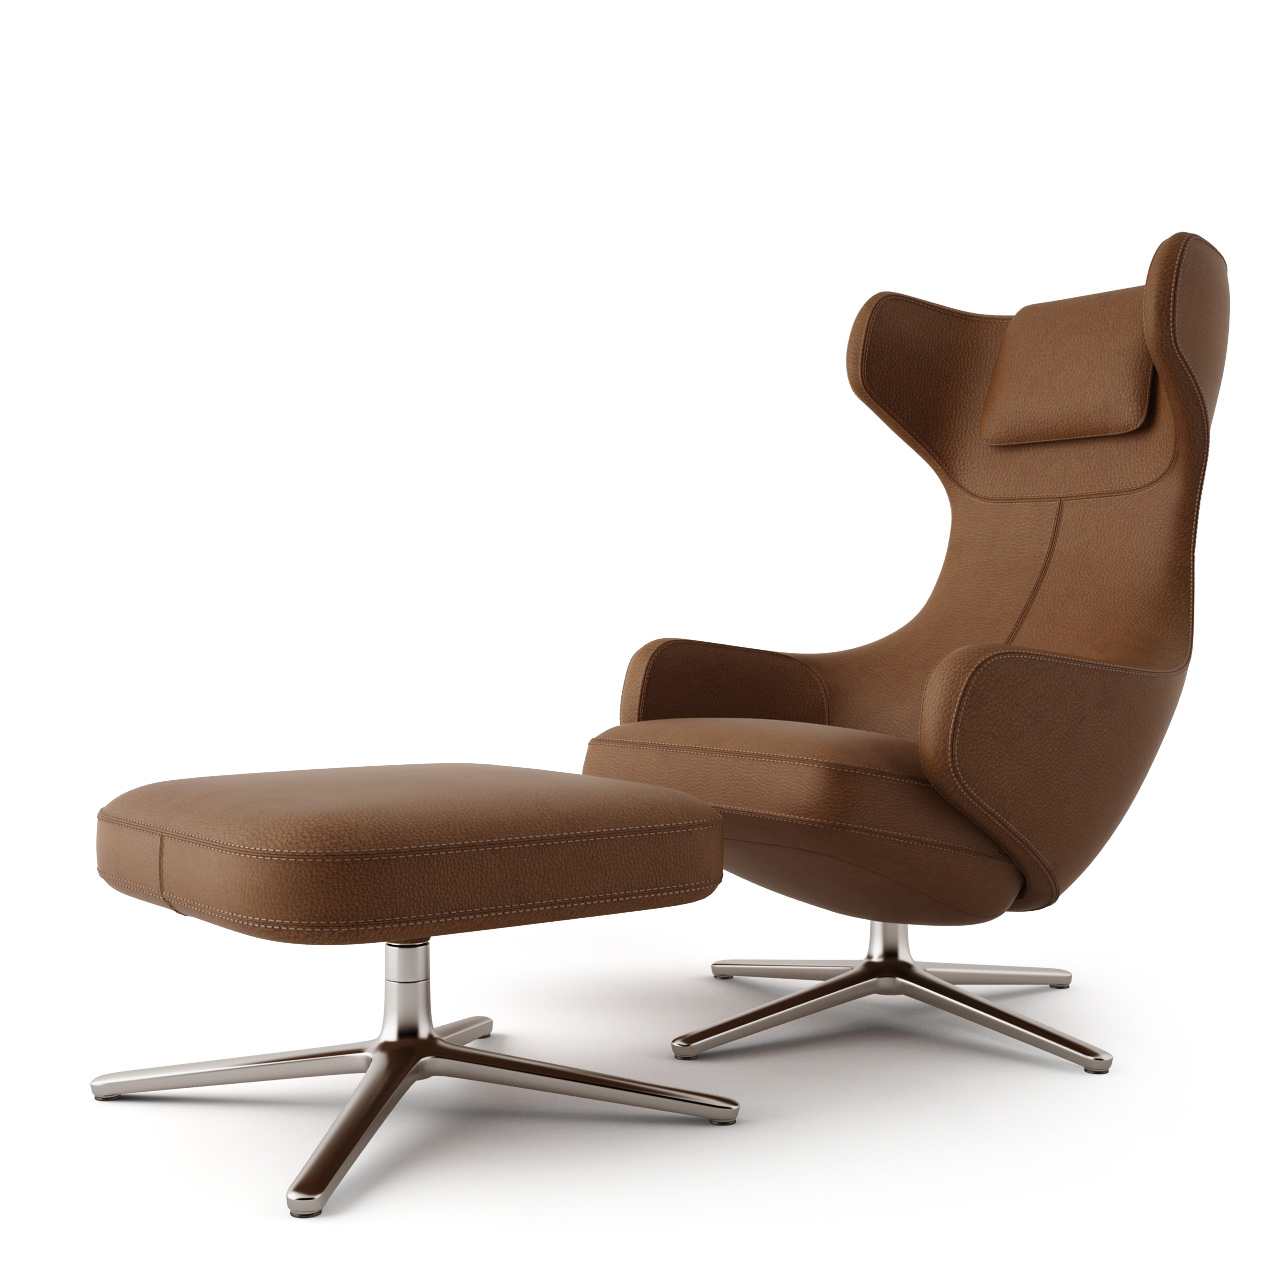 Grand repose lounge chair by vitra dimensiva for Vitra lounge chair nachbau